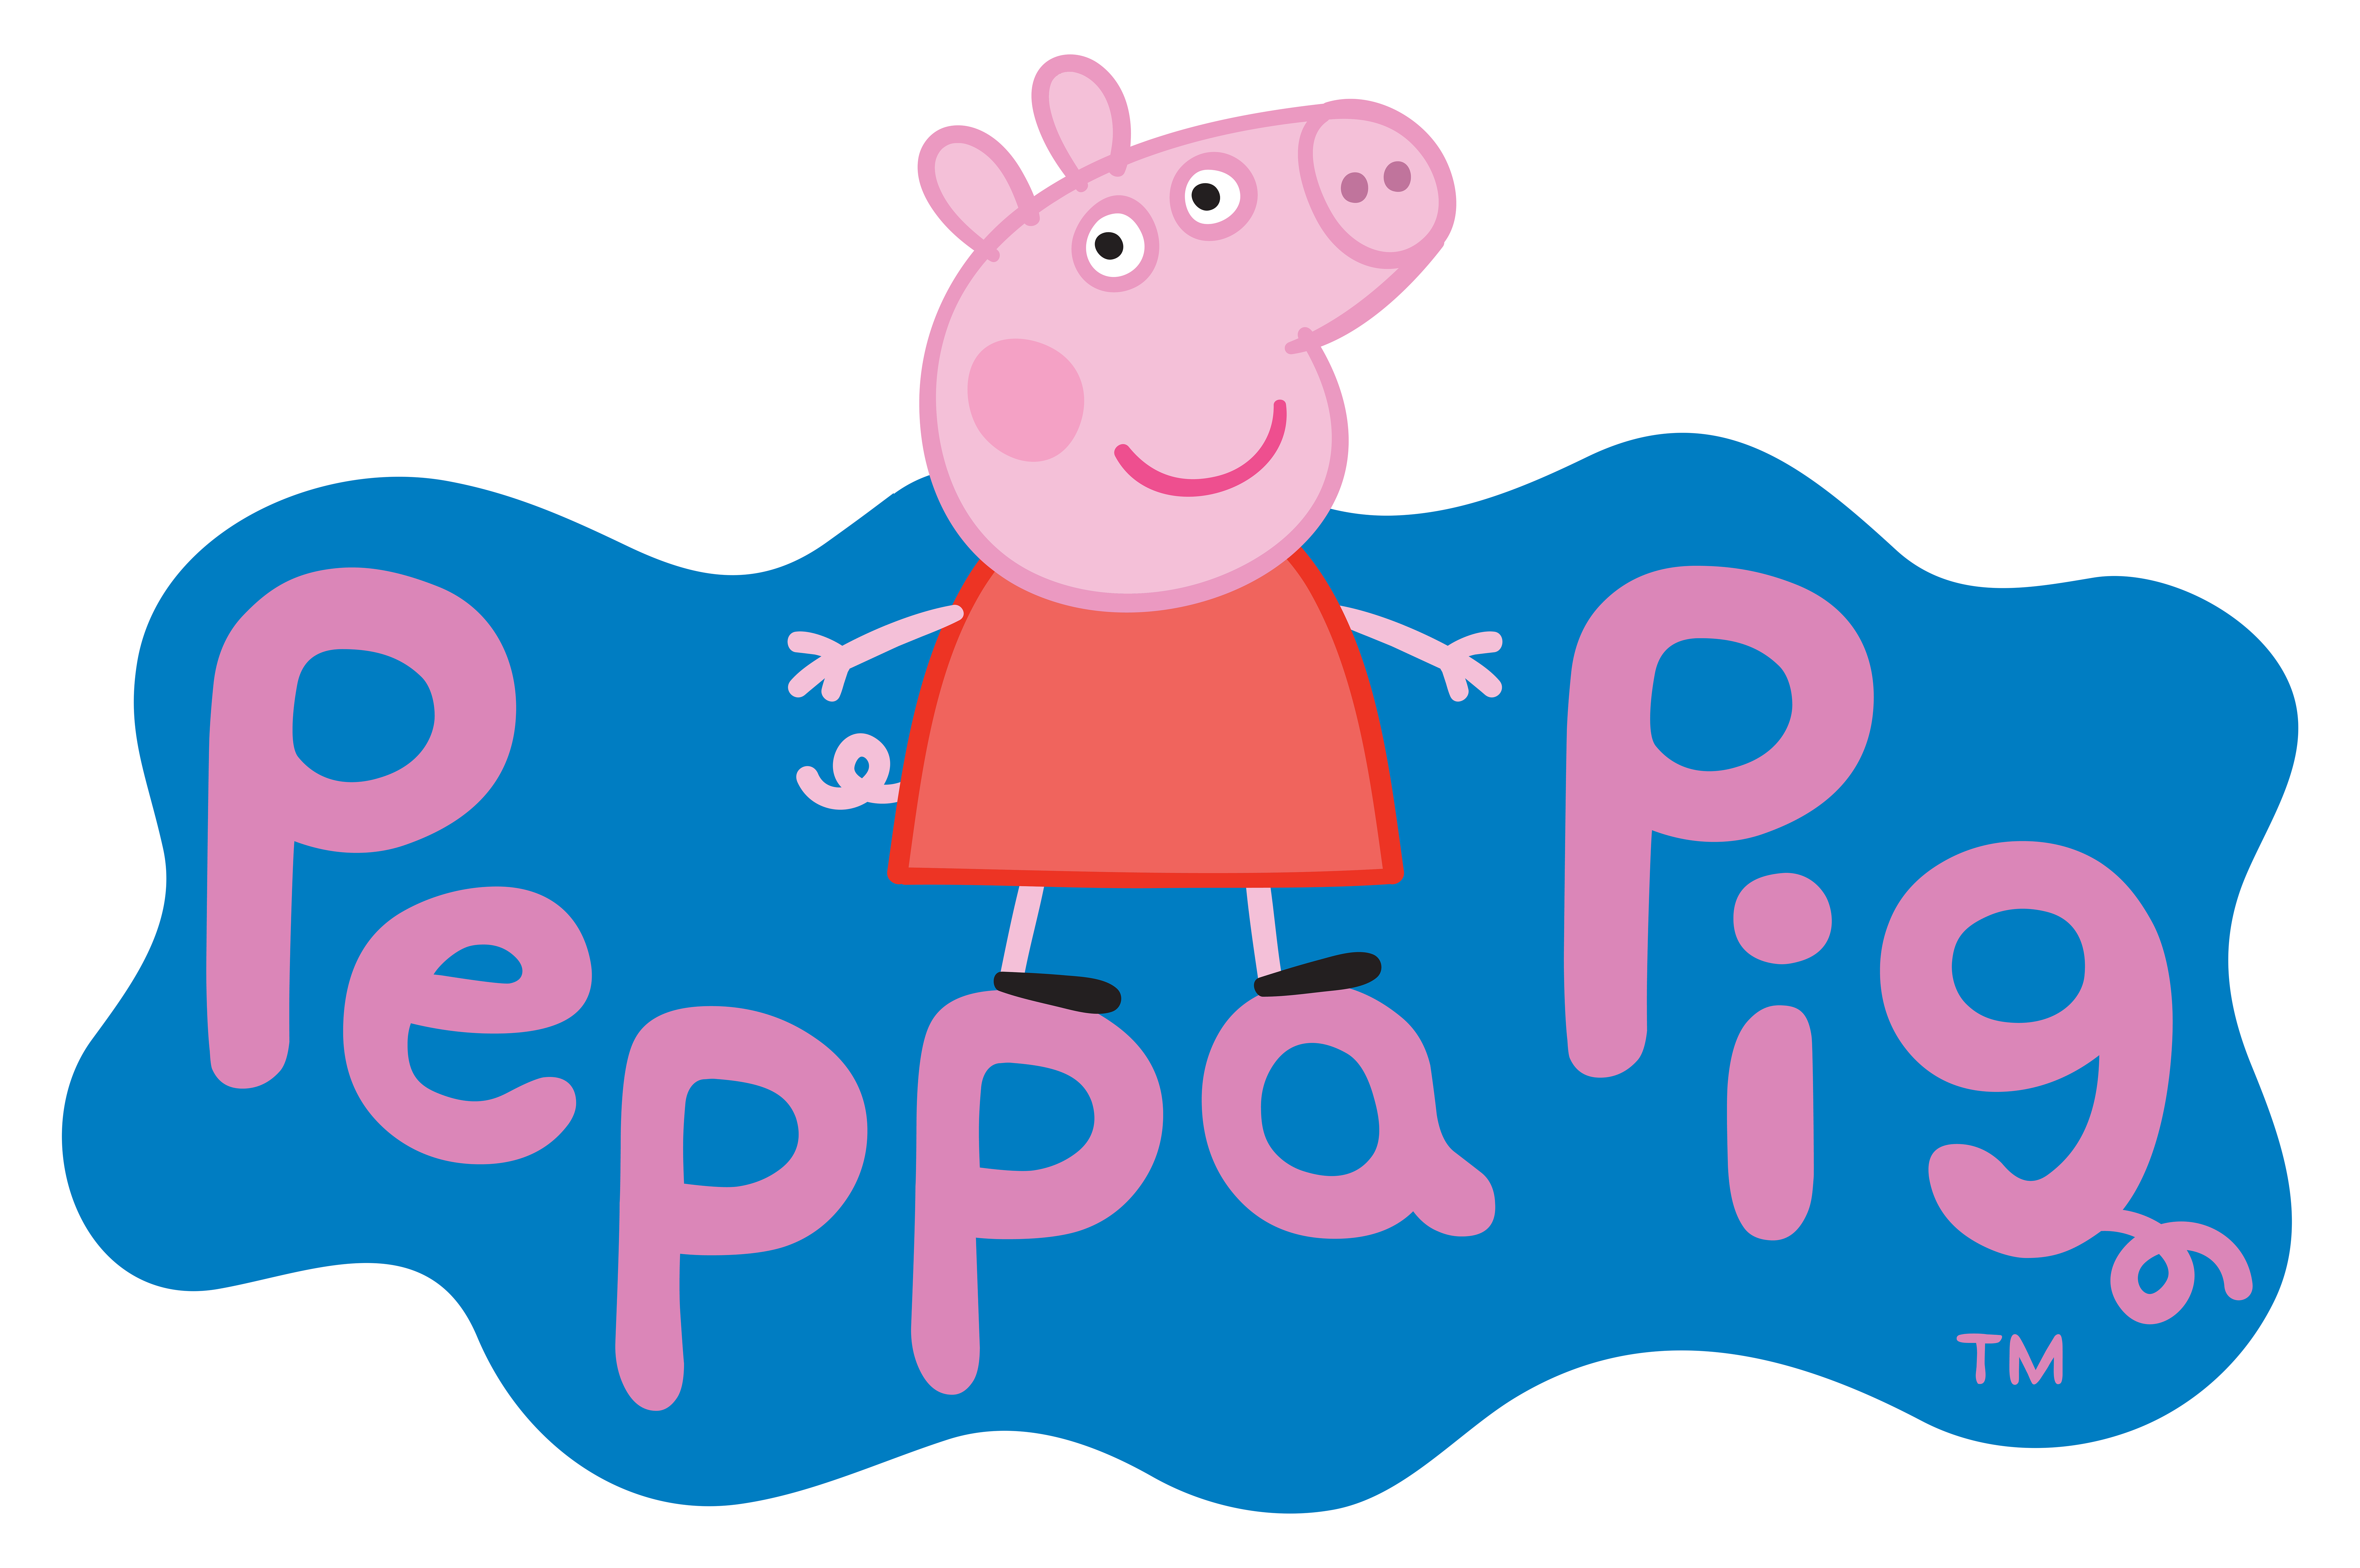 Peppa pig house clipart graphic royalty free Peppa Pig Logo Transparent PNG Clip Art Image | 356 | Pinterest ... graphic royalty free